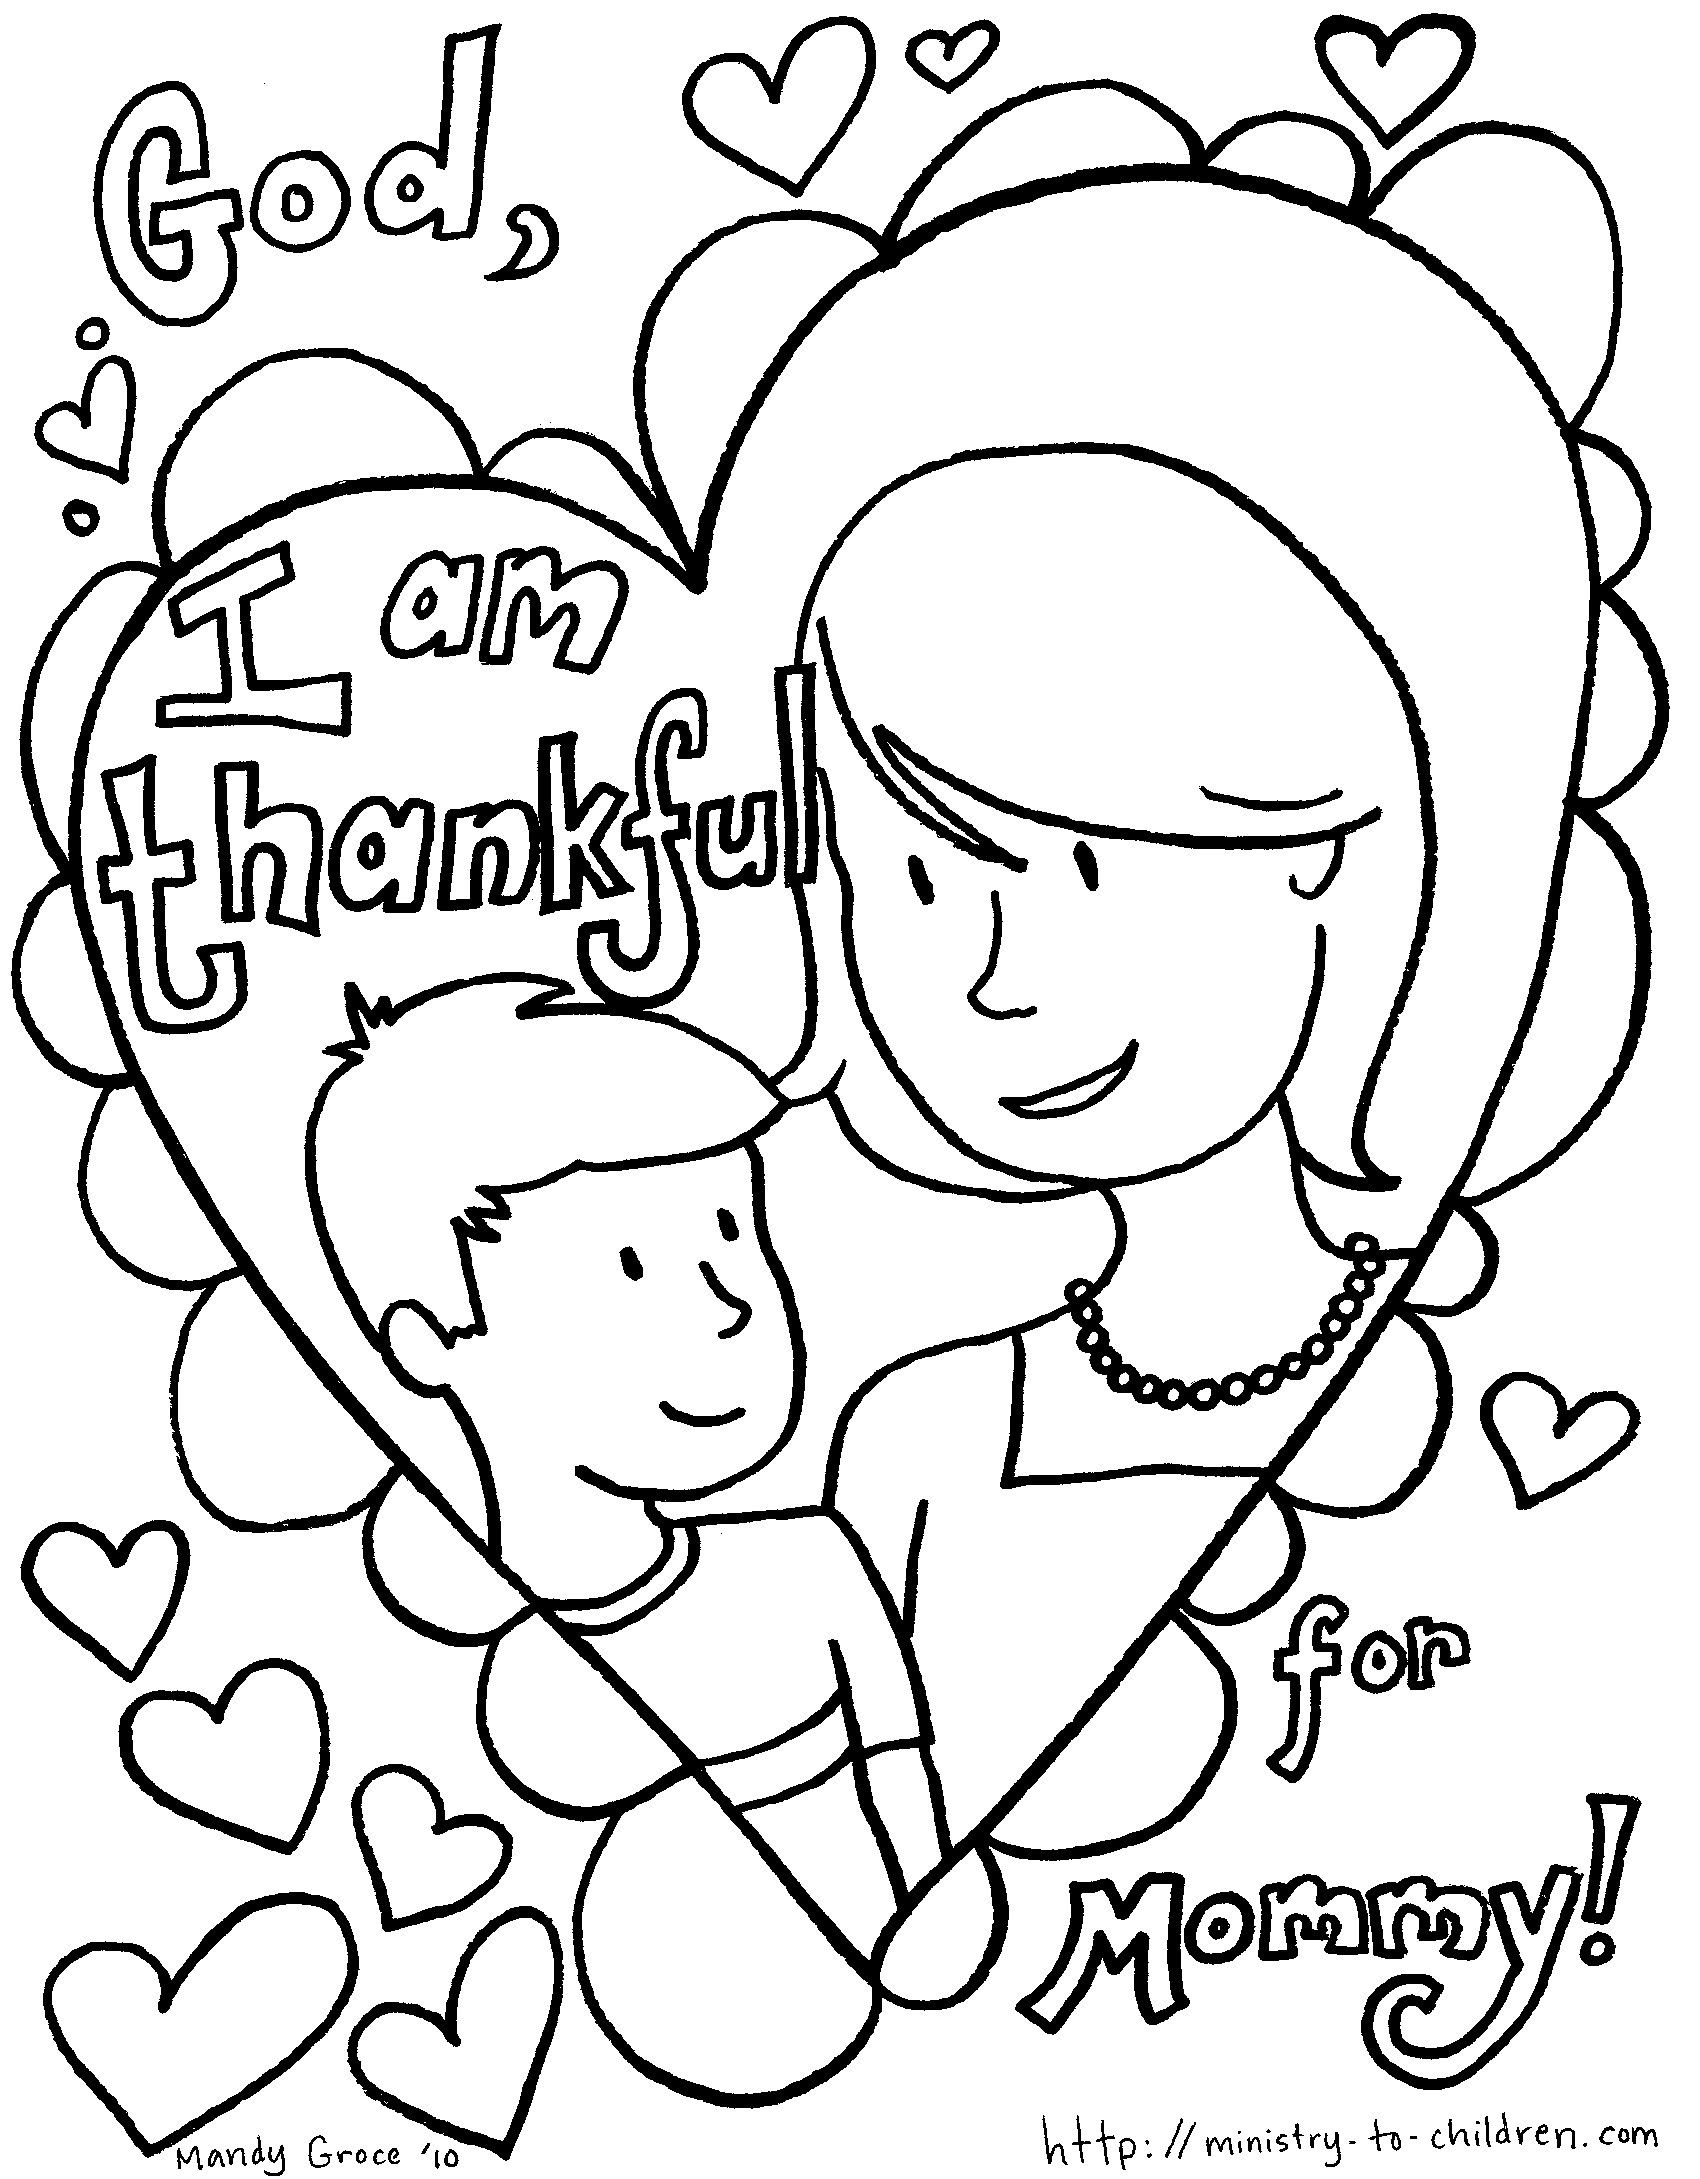 printable colouring pages mothers day mother39s day coloring page ΓΙΟΡΤΗ ΜΗΤΕΡΑΣ mothers day colouring mothers day pages printable